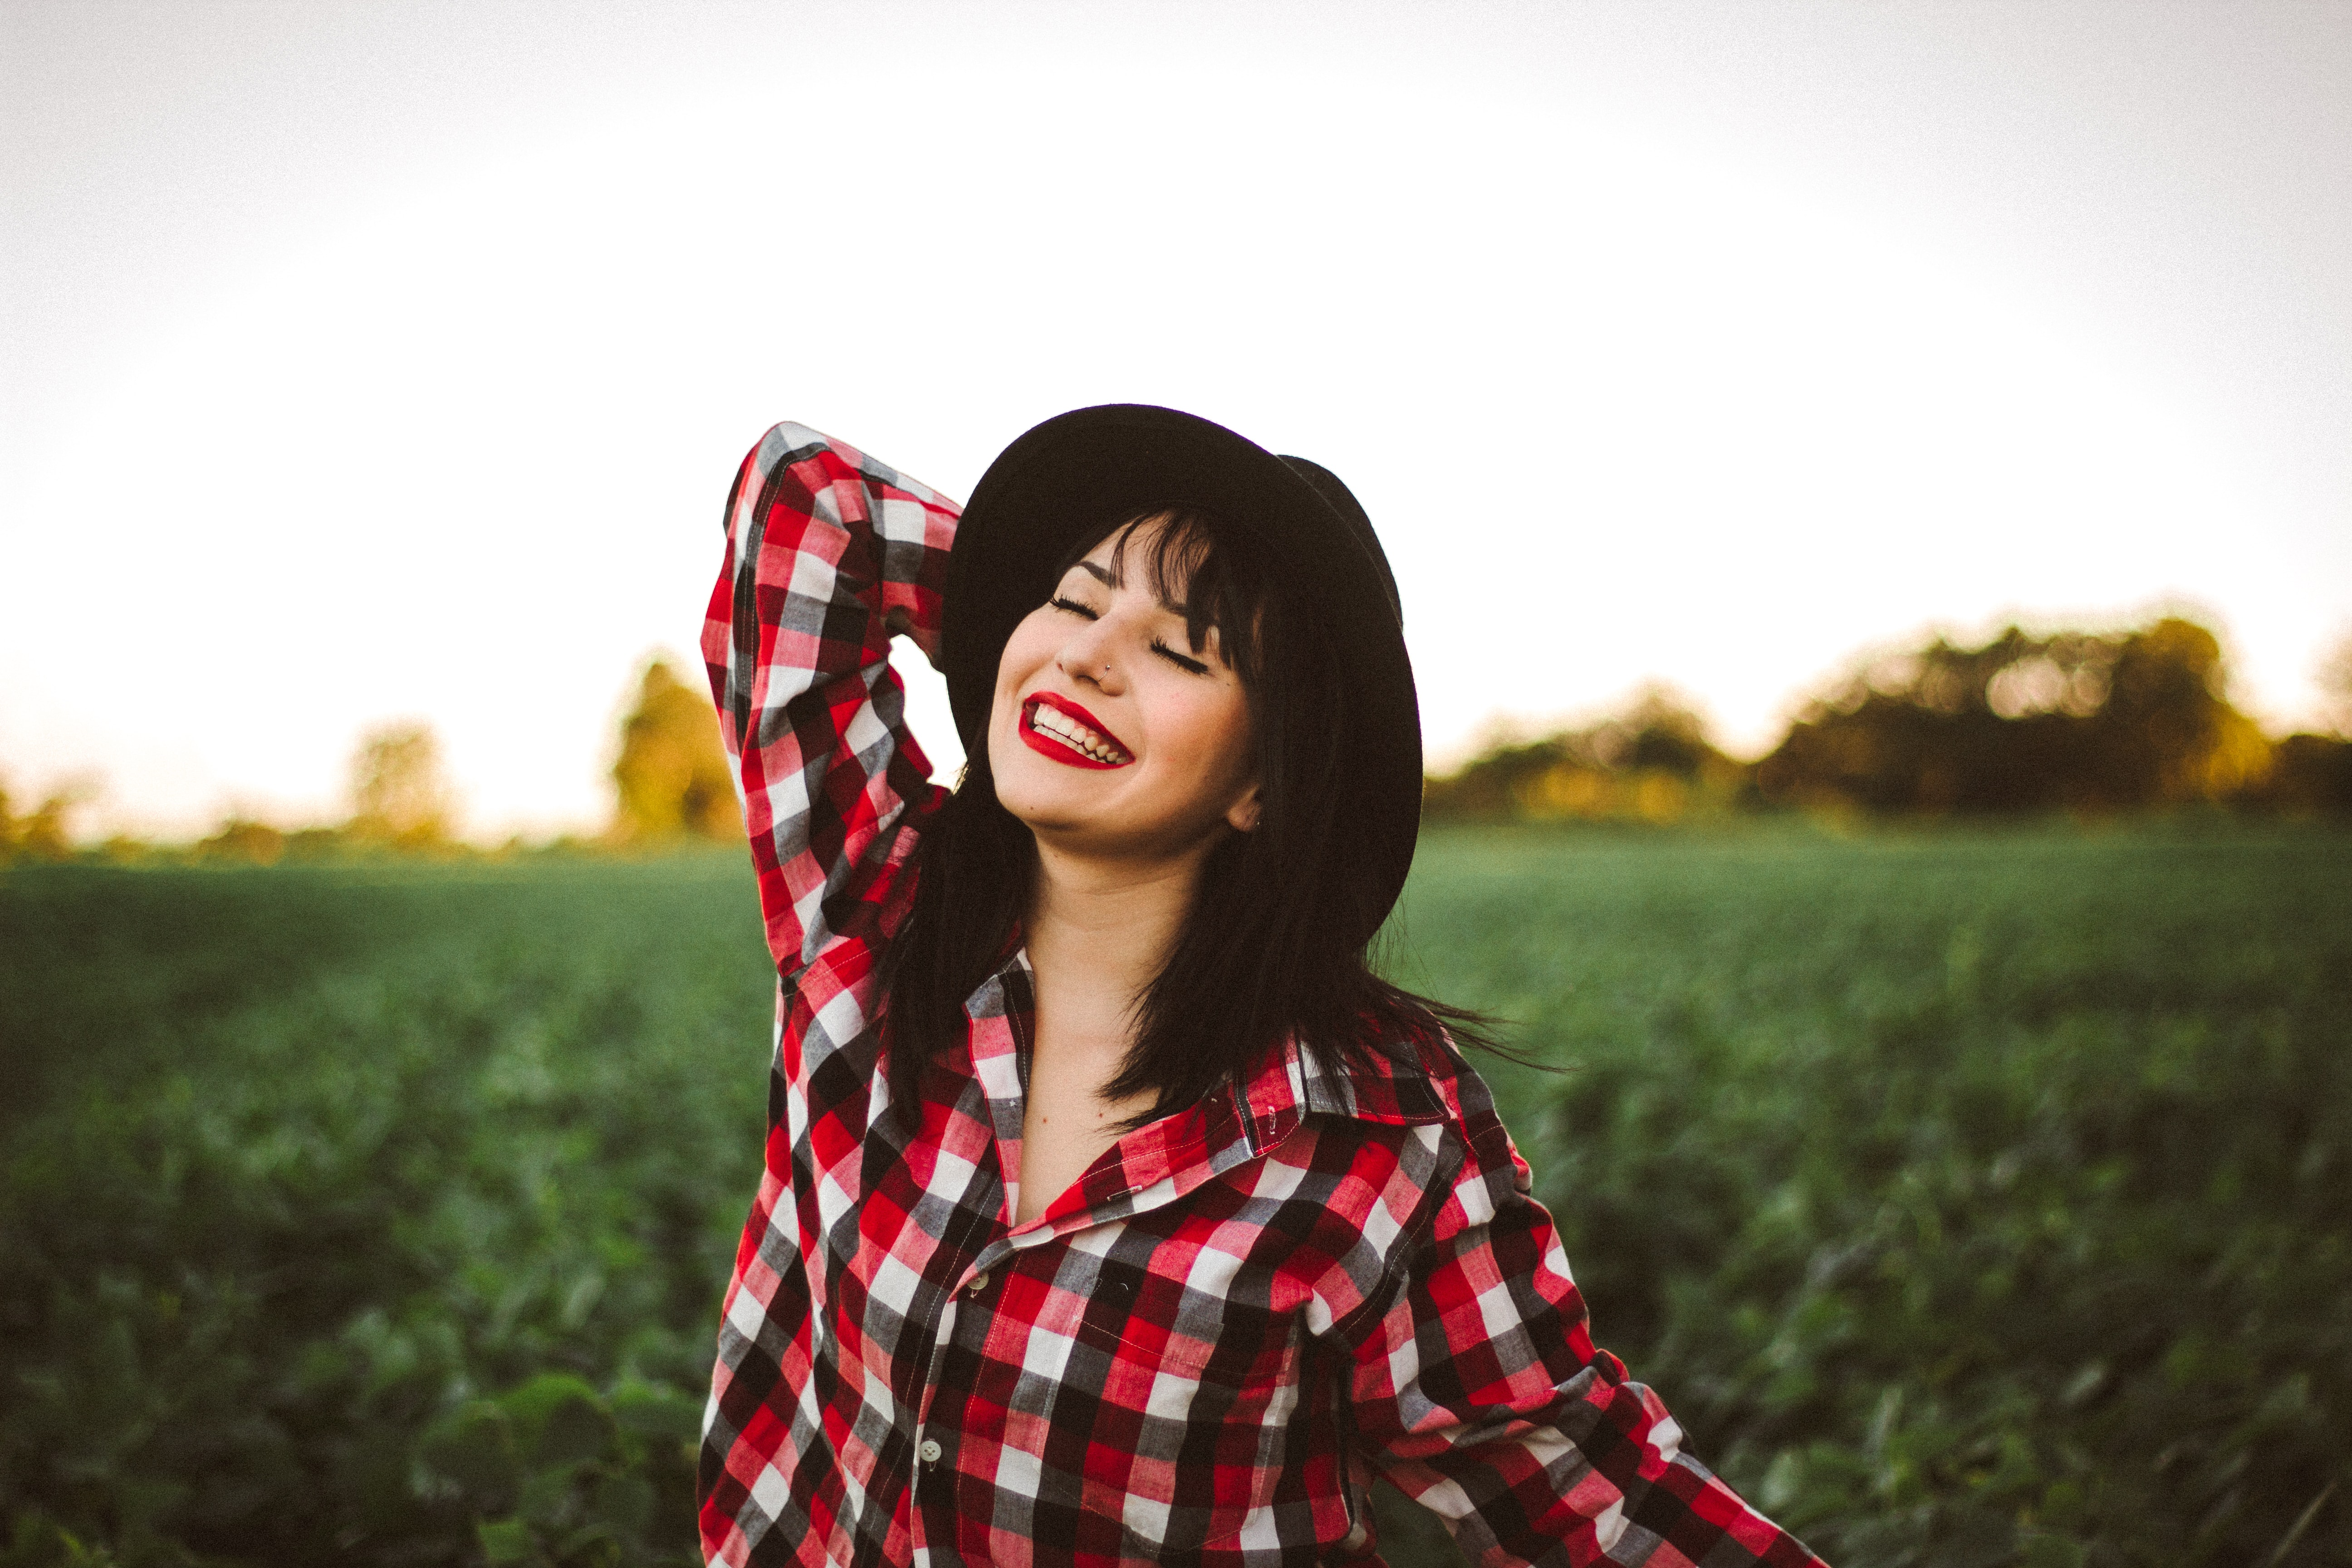 An Asian woman in a plaid shirt and black hat, posing for a picture in a field.